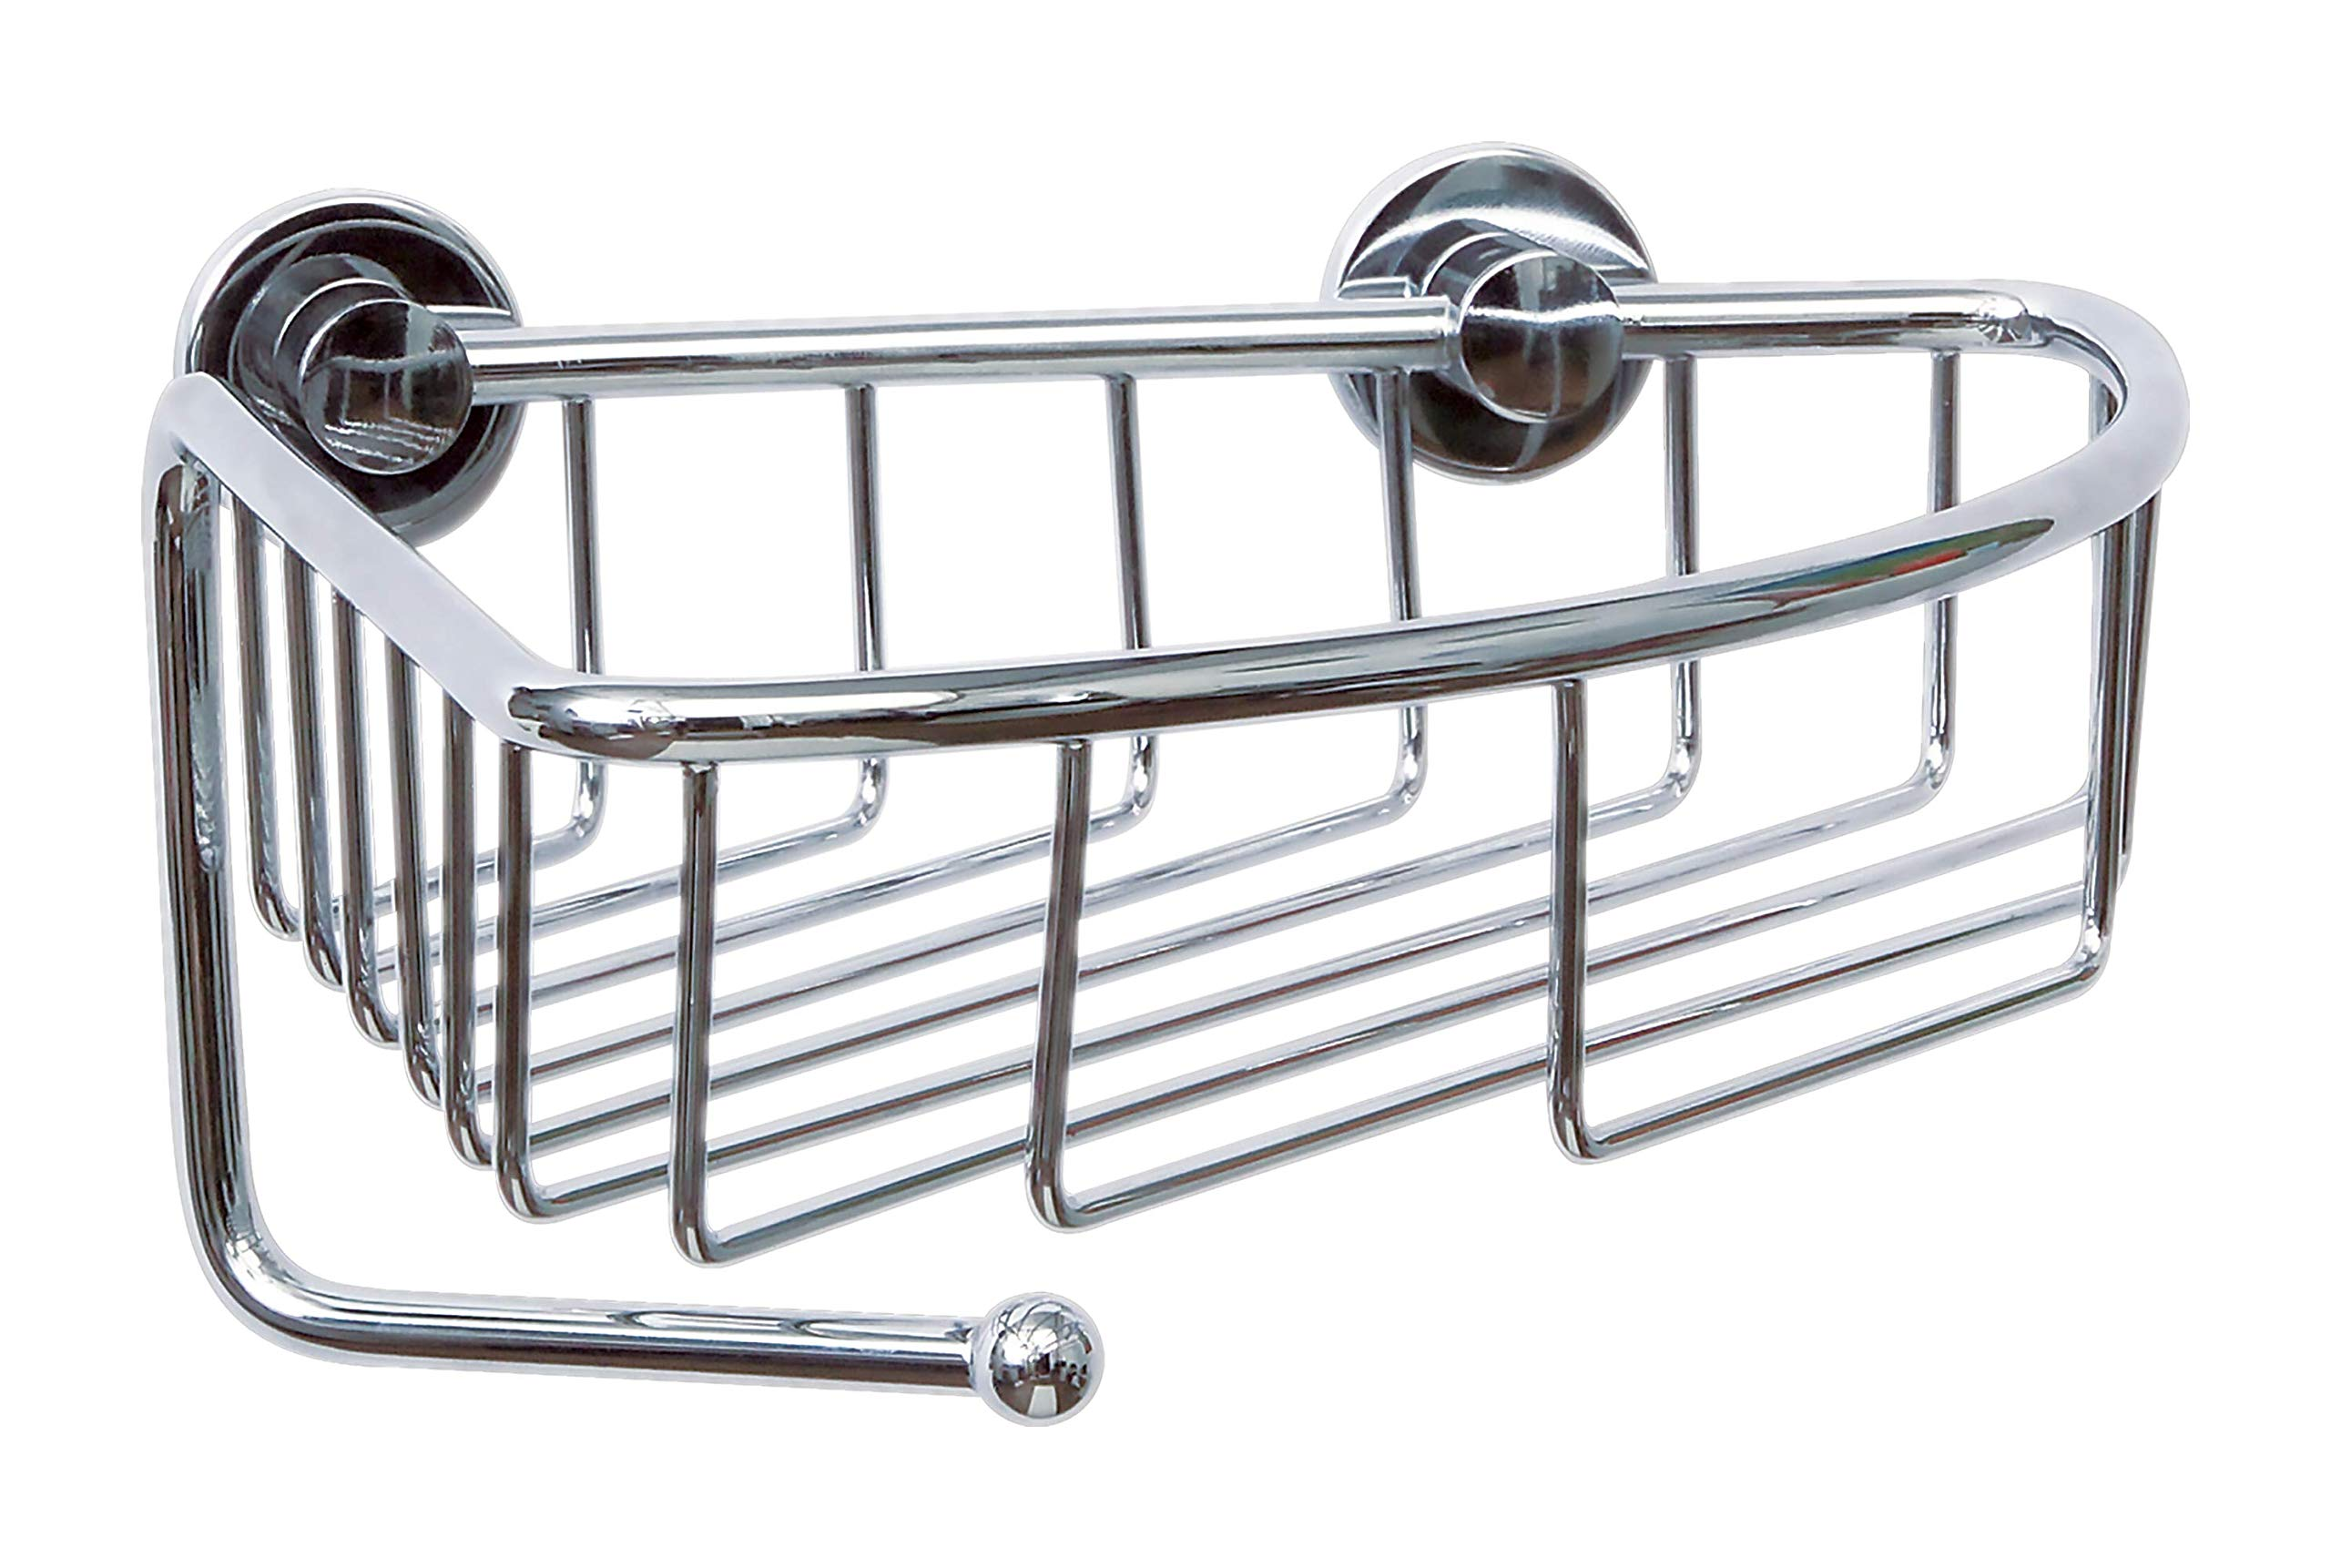 Tesa draad Shower Caddy (Without Drilling, Corner Variant, Single Hook, Brass, Chrome-Plated, with Adhesive Solution, 130mm x 210mm x 220mm)